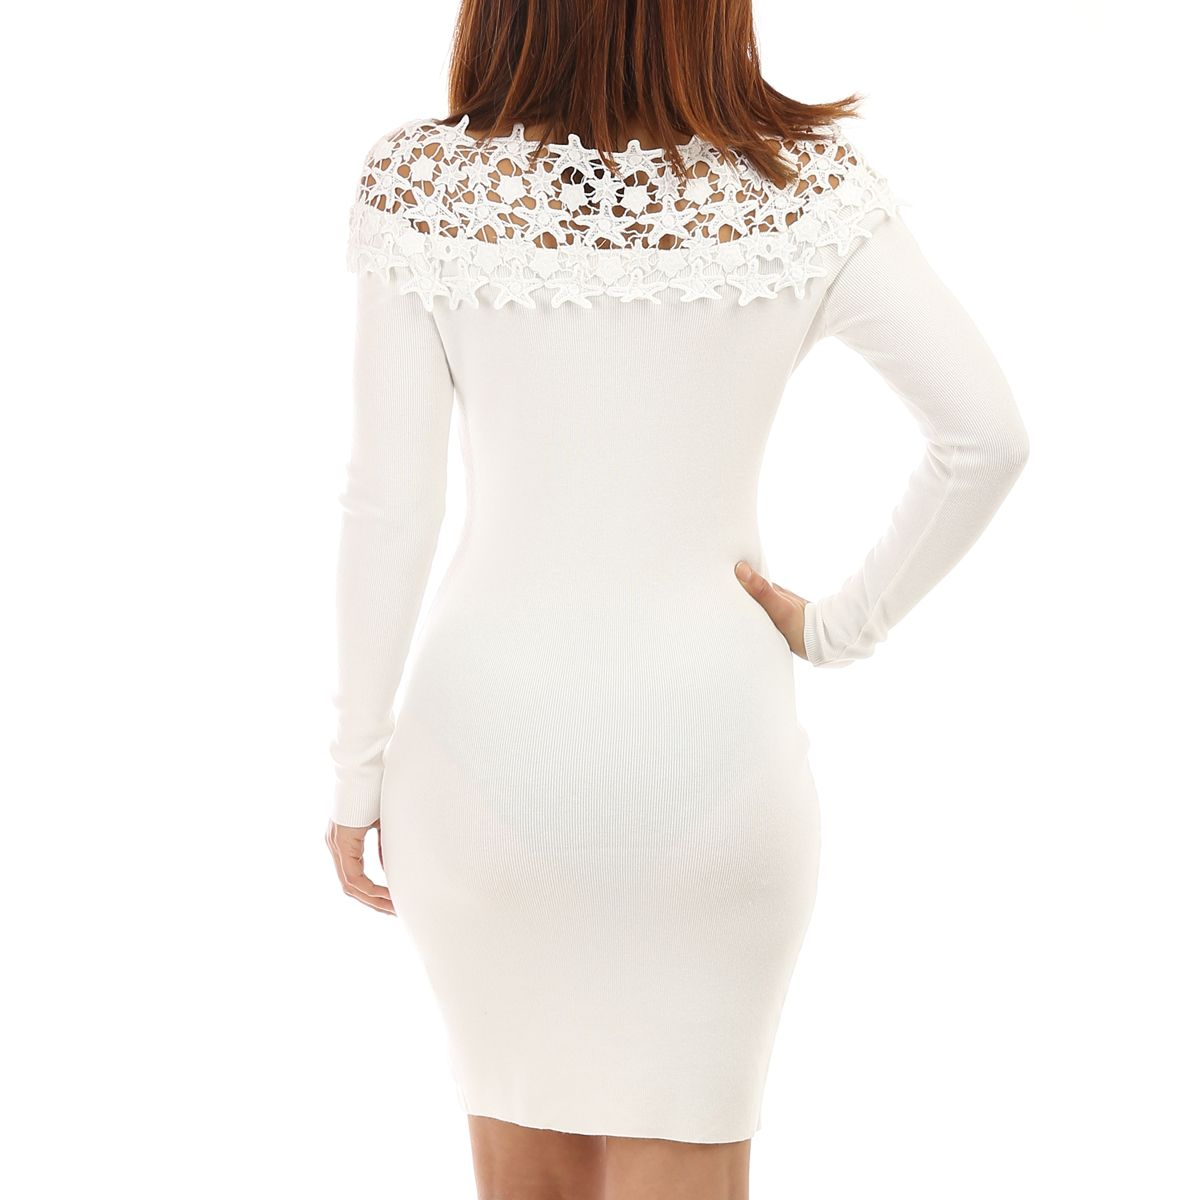 Robe pull blanche avec broderies